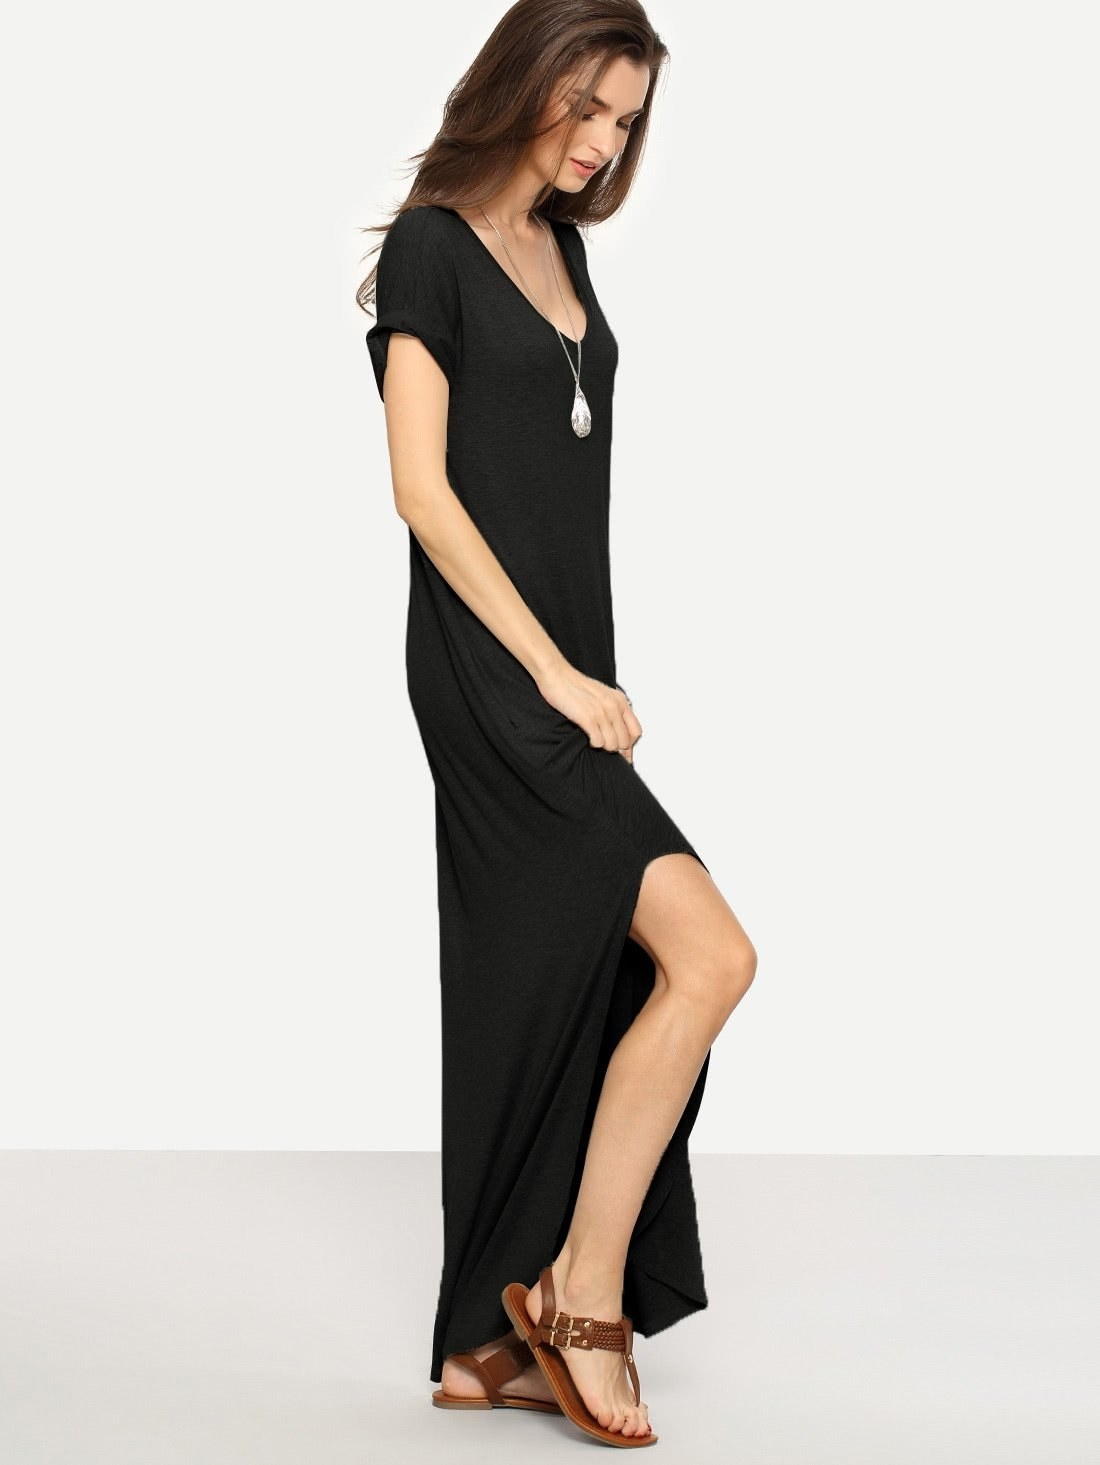 Model wearing the dress, which has short sleeves, a scoop neck, and a slit